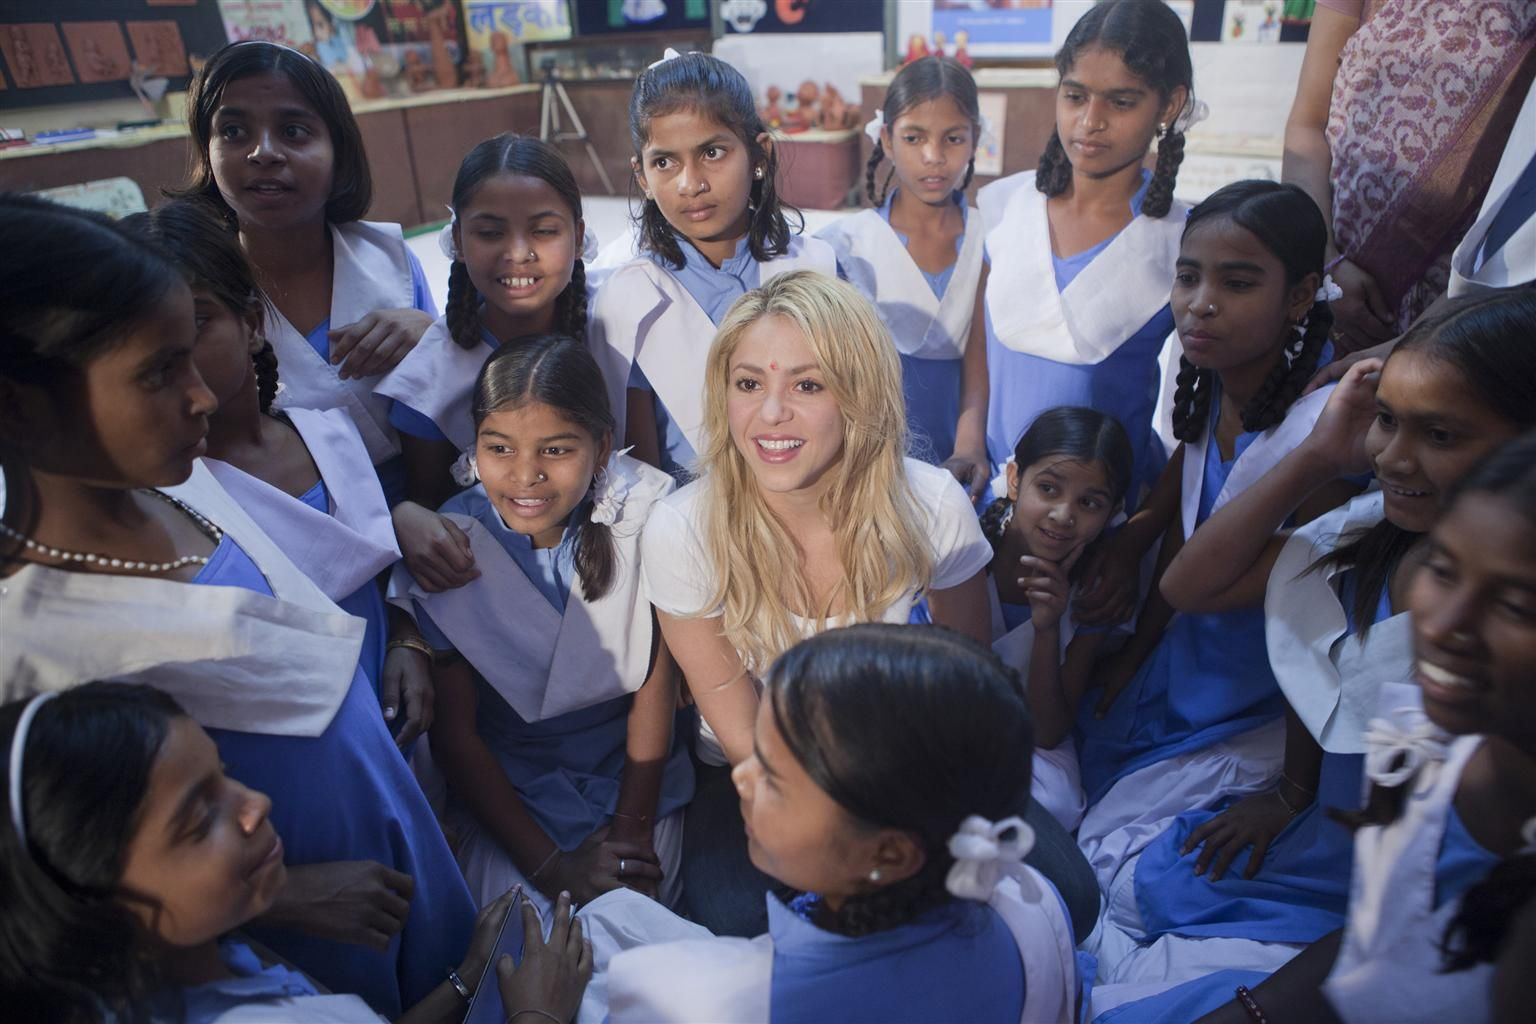 UNICEF Goodwill Ambassador Shakira smiles, sitting amidst adolescent girls from the UNICEF supported KGBV residential educational programme, in Udaipur District, India. Shakira met to discuss the importance of educating and empowering girls to break the cycle of poverty and inequity.  KGBV is a residential programme that provides a basic education and life-skills training for girls in marginalized and often difficult-to-reach areas. © UNICEF/Prashanth Vishwanathan http://www.unicef.org